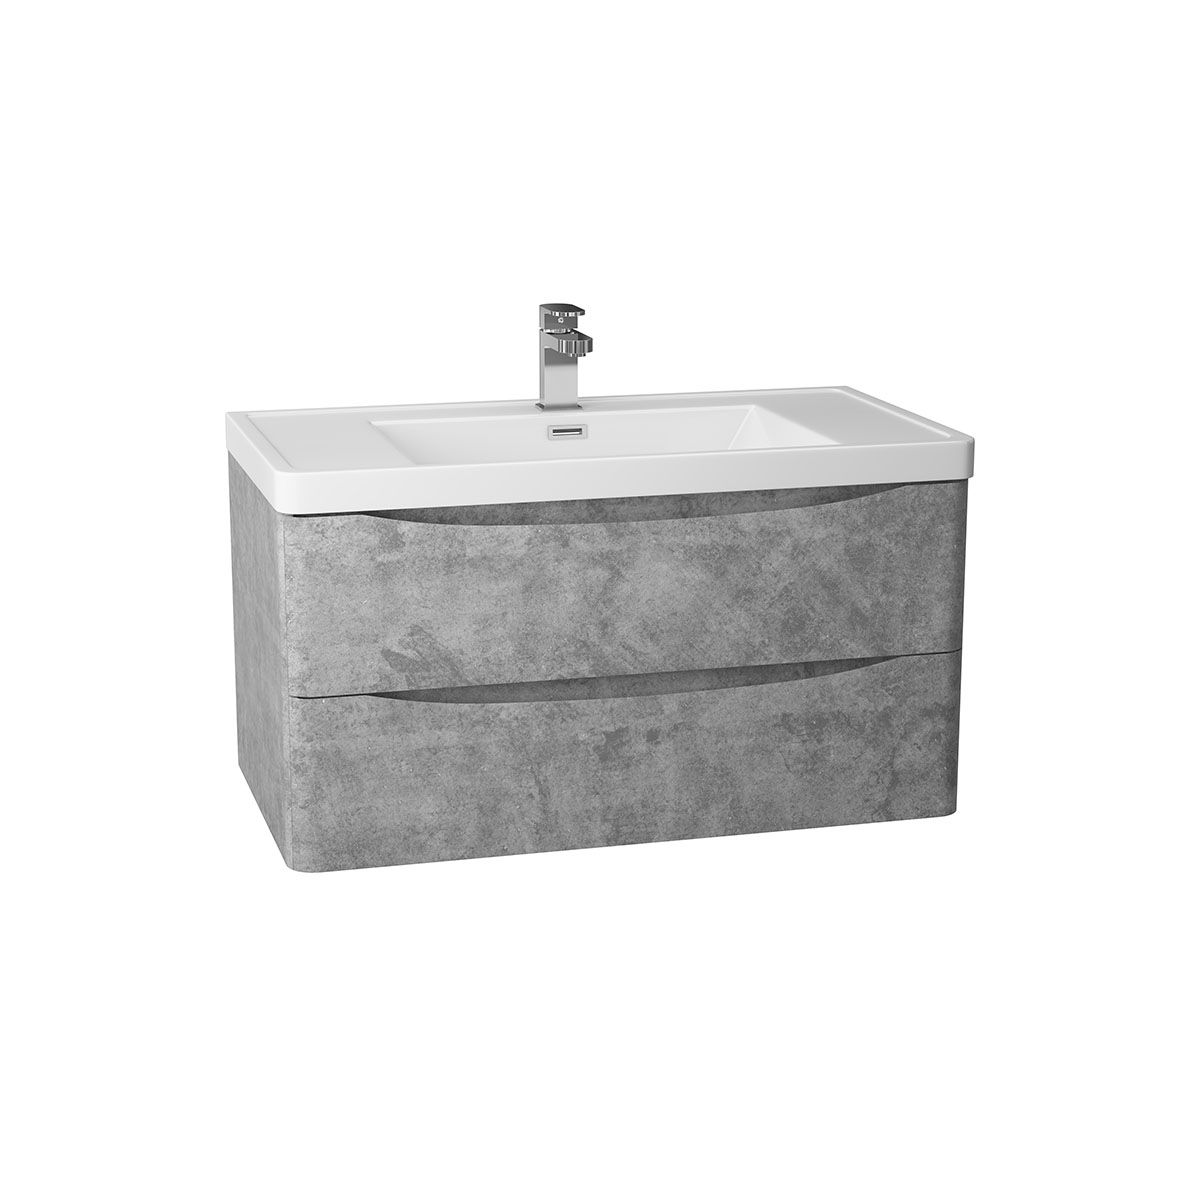 Bali Concrete Grey Wall Mounted Vanity Unit 900mm